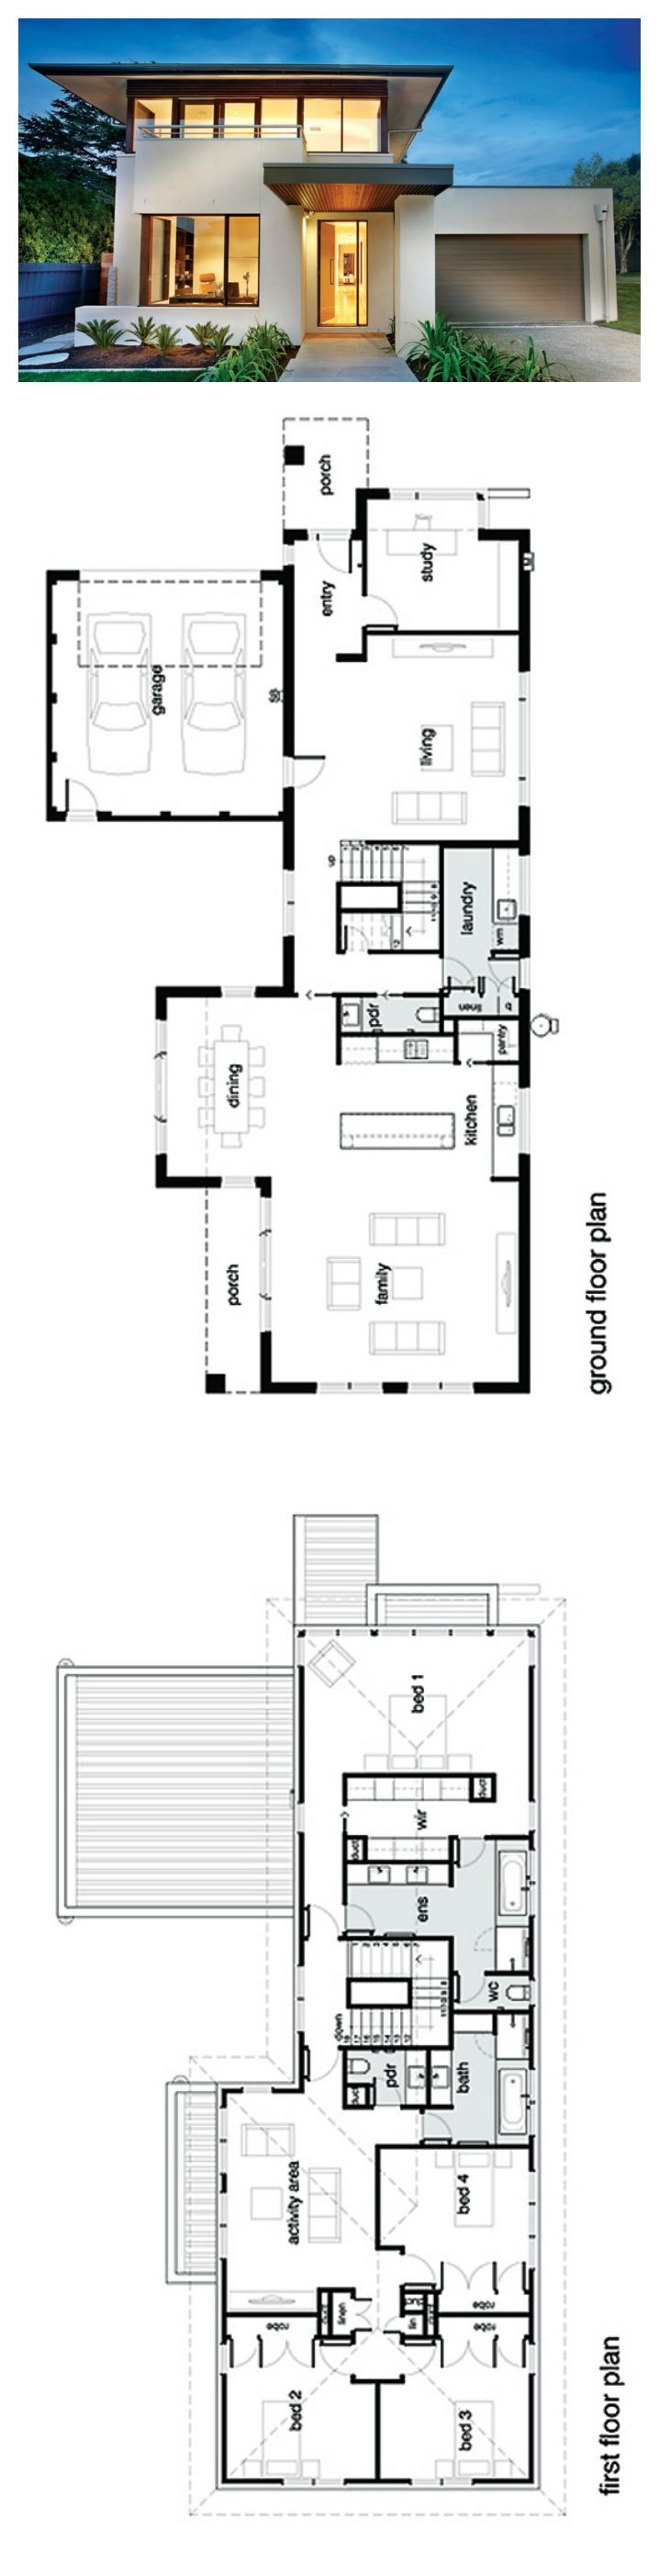 Best 25 modern house plans ideas on pinterest for Modern house open floor plans